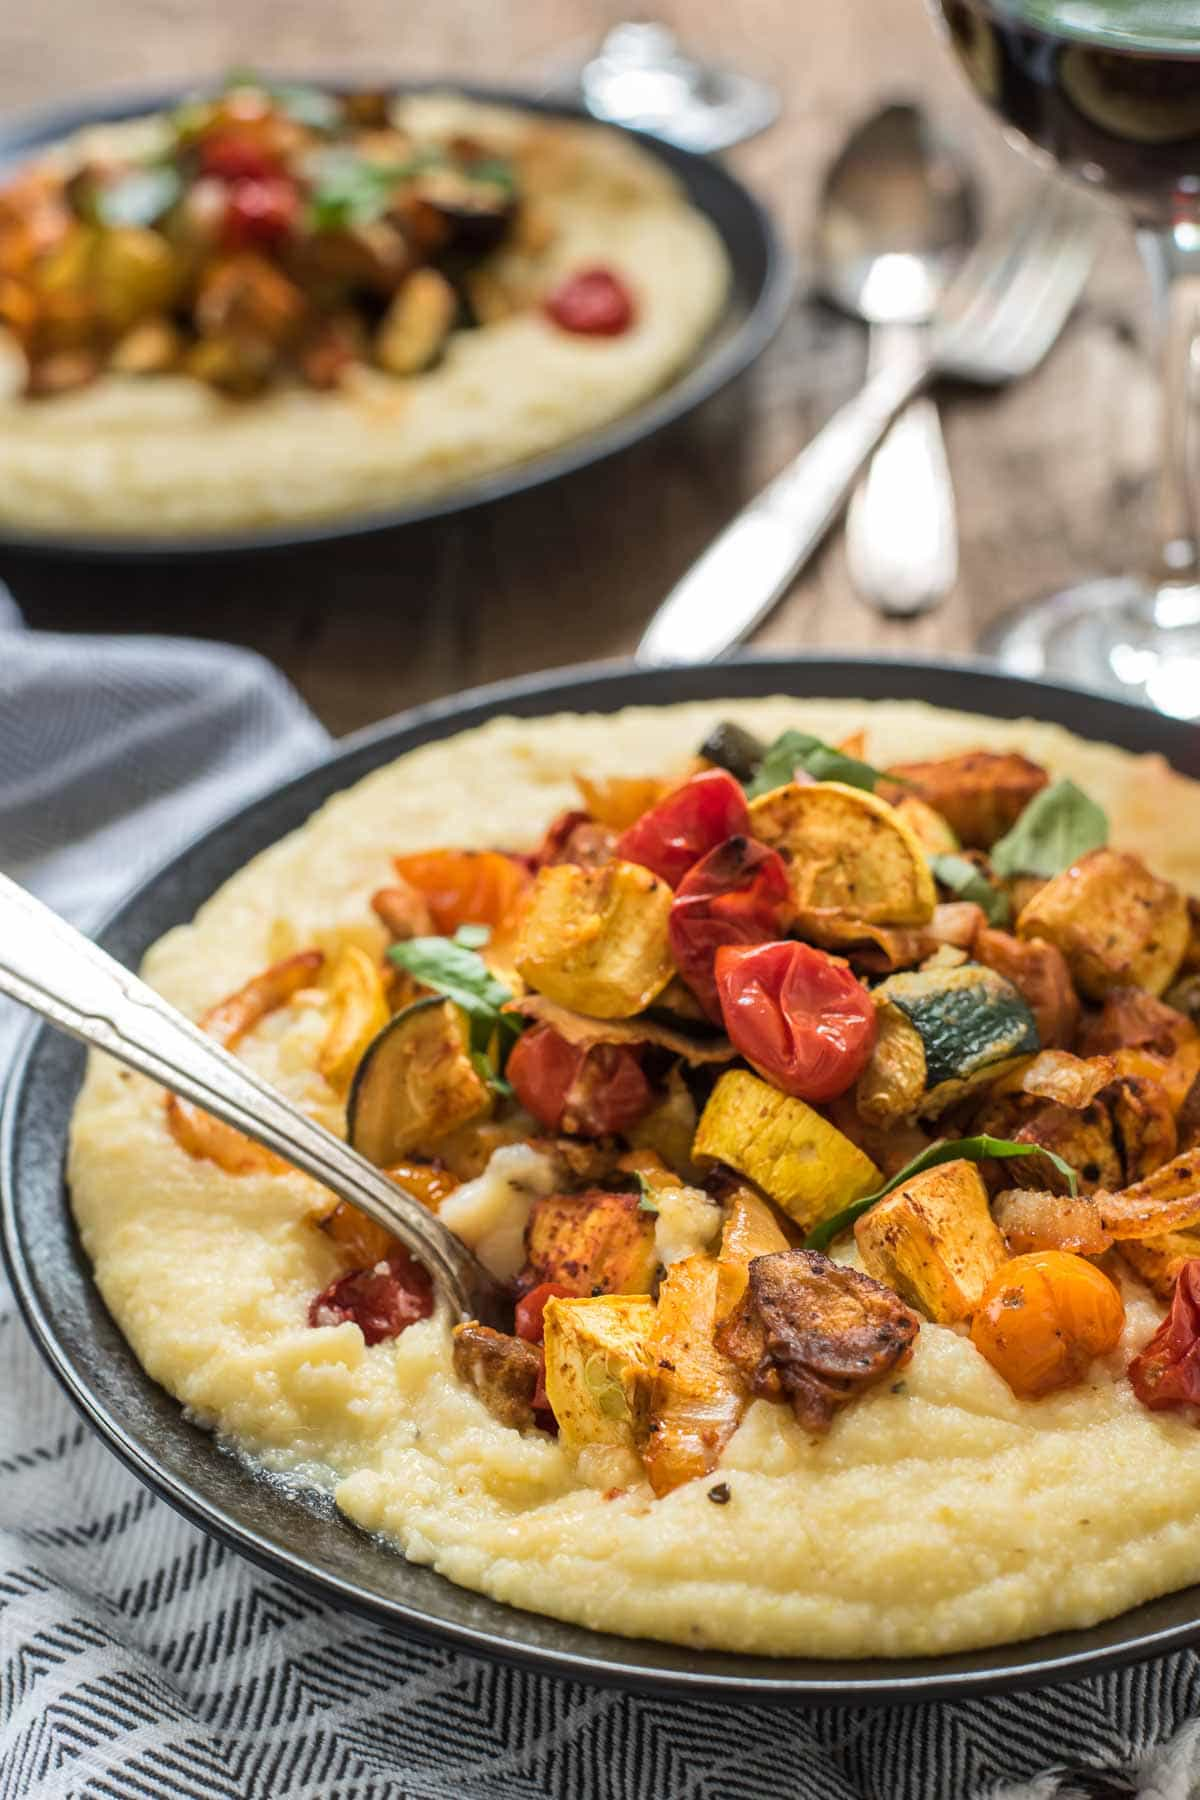 Smoky roasted tomatoes, eggplant, and squash pair beautifully with cheesy polenta in these Roasted Vegetable Polenta Bowls. It's the ultimate late summer comfort food!